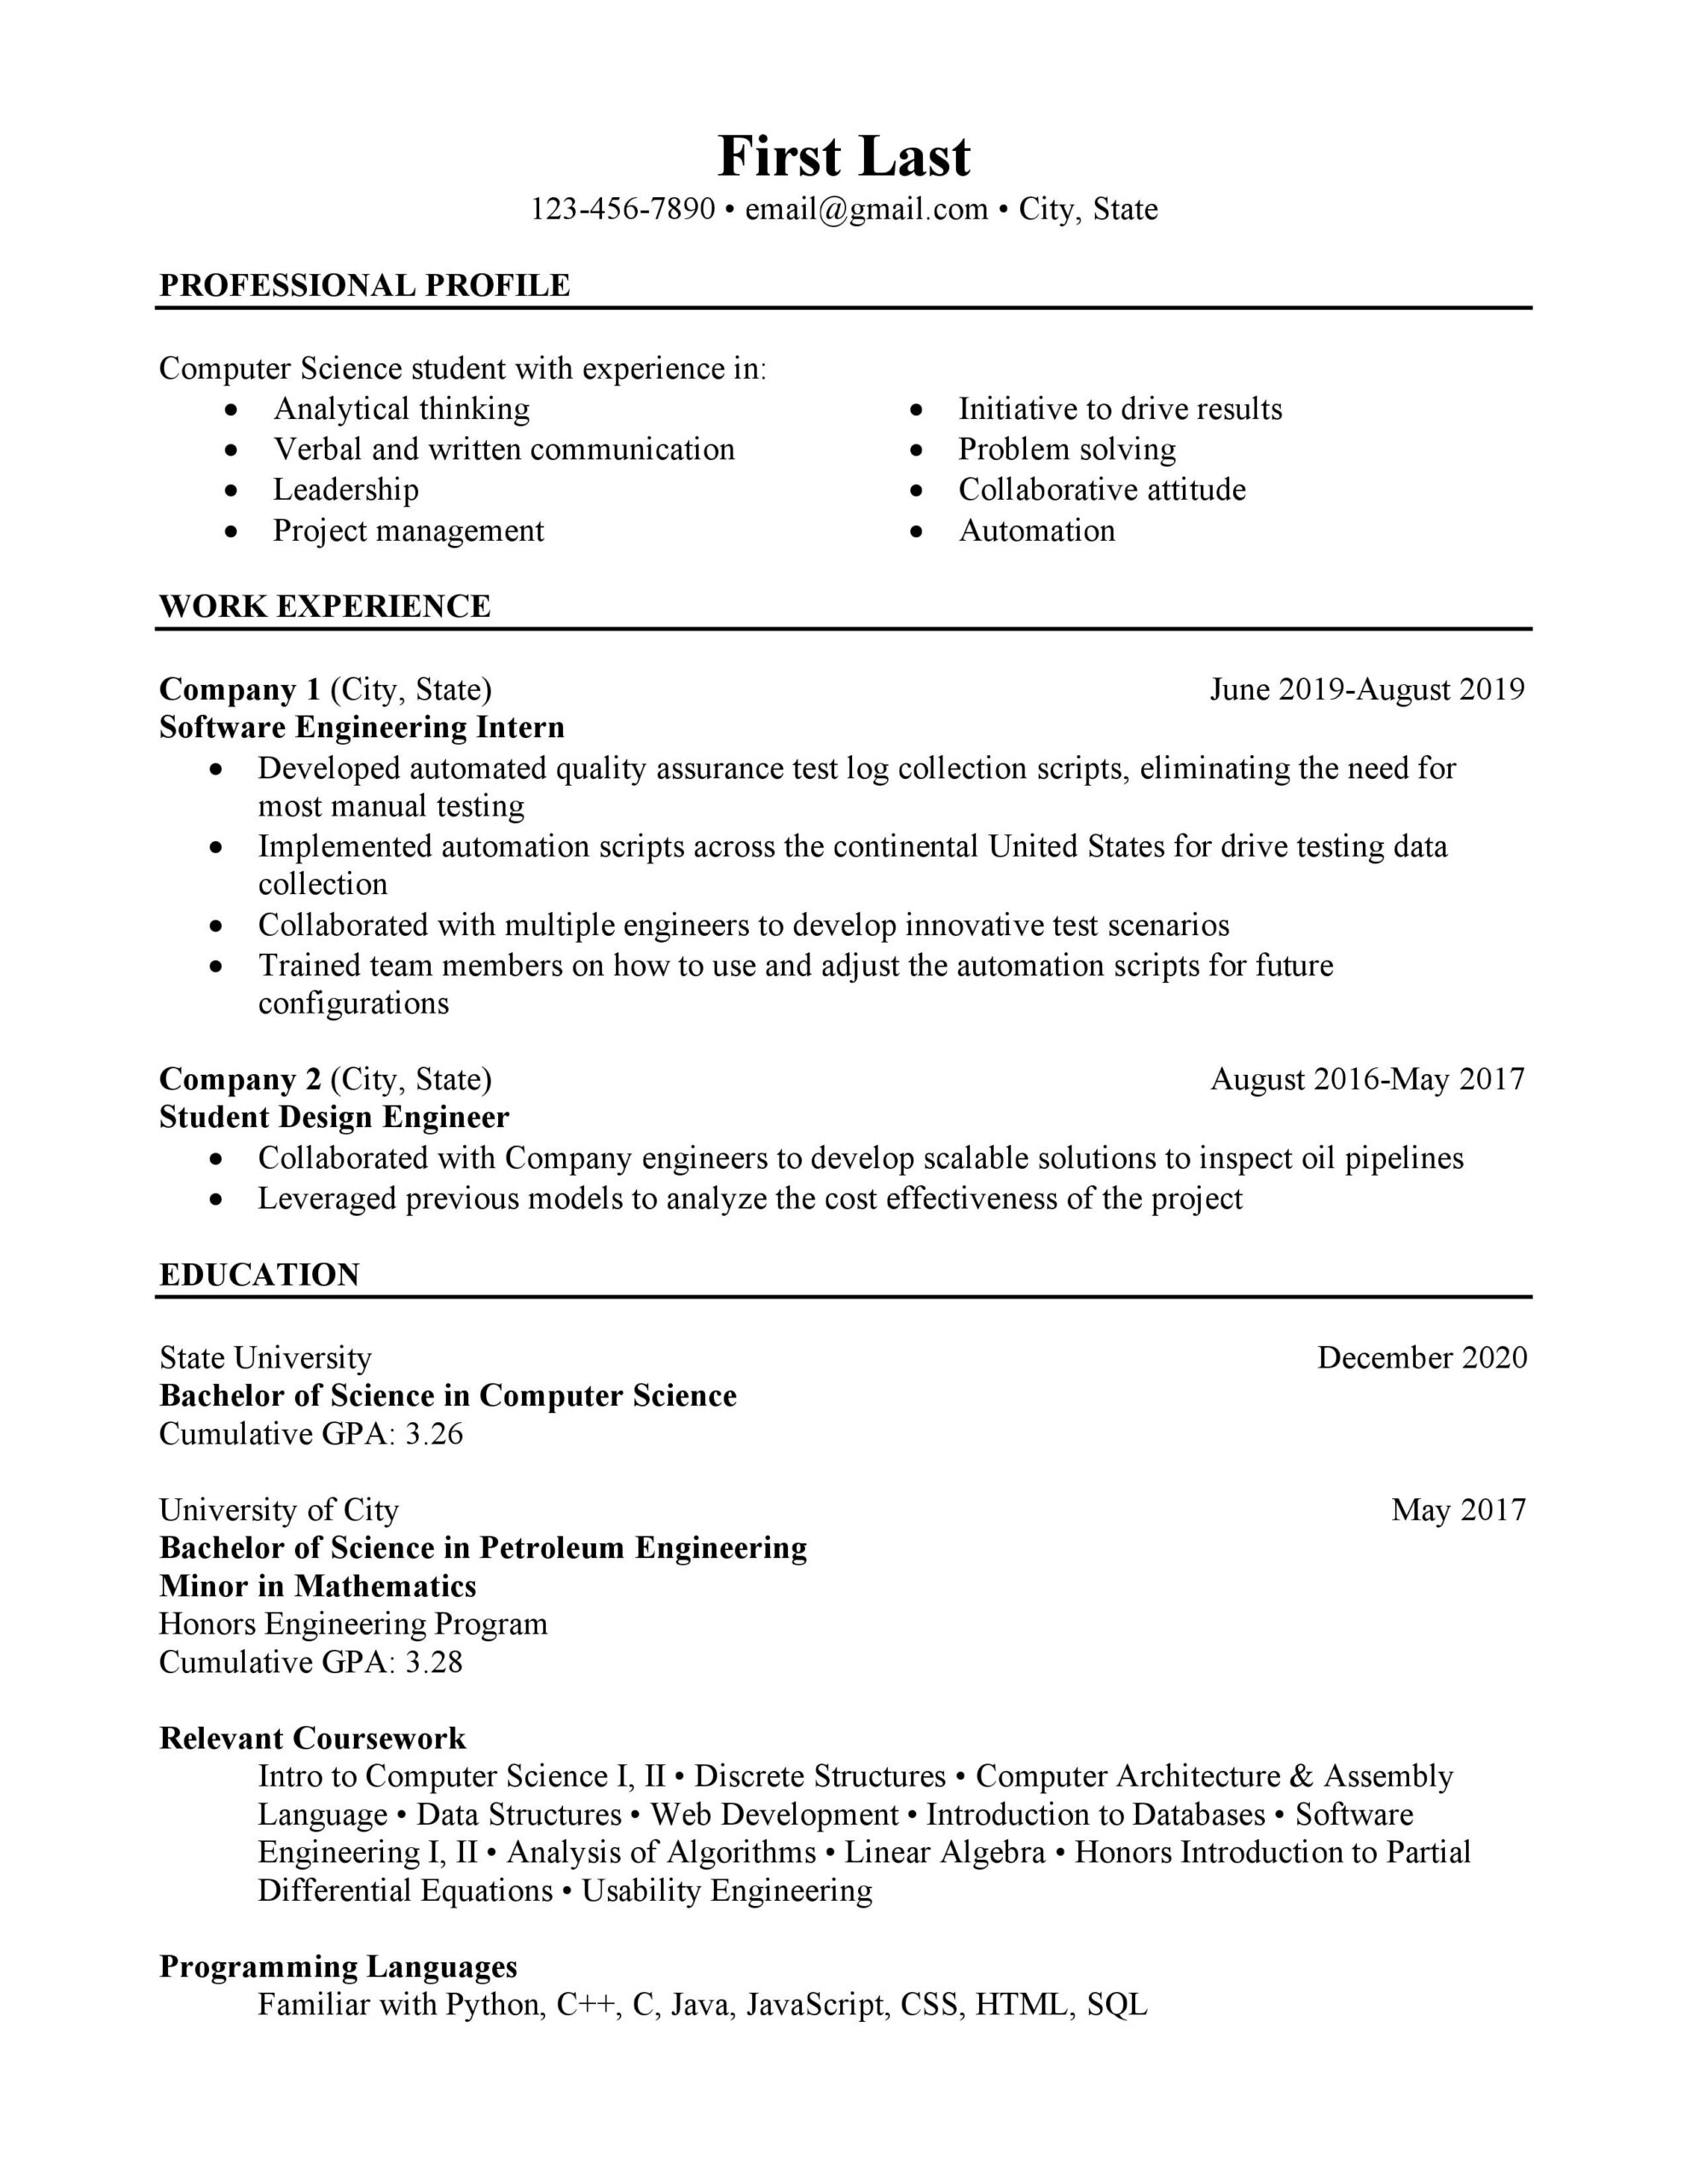 computer science student looking to improve resume resumes software engineer intern Resume Software Engineer Intern Resume Reddit